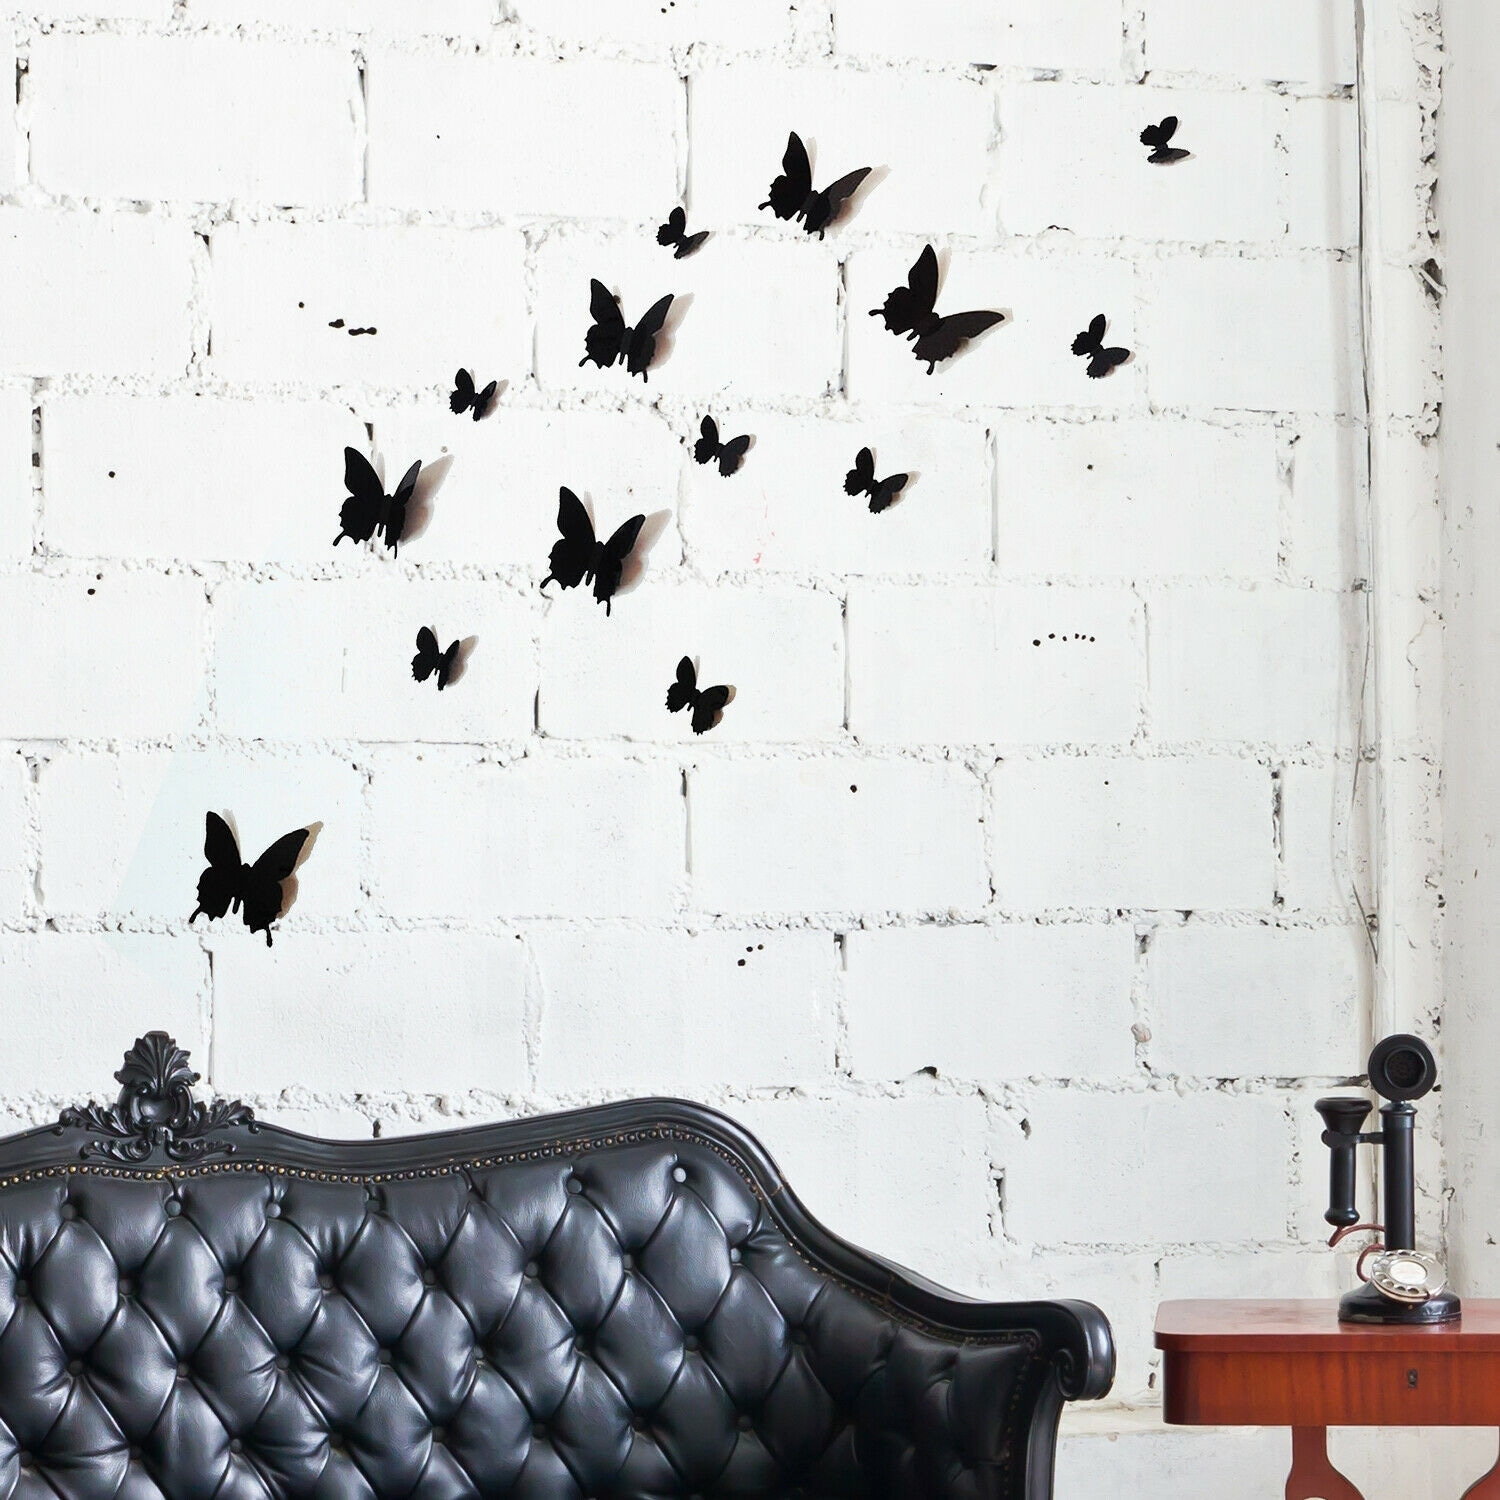 Shop Walplus 3d Black Butterfly Wall Stickers Wall Decorations Diy Art Room Overstock 31769532